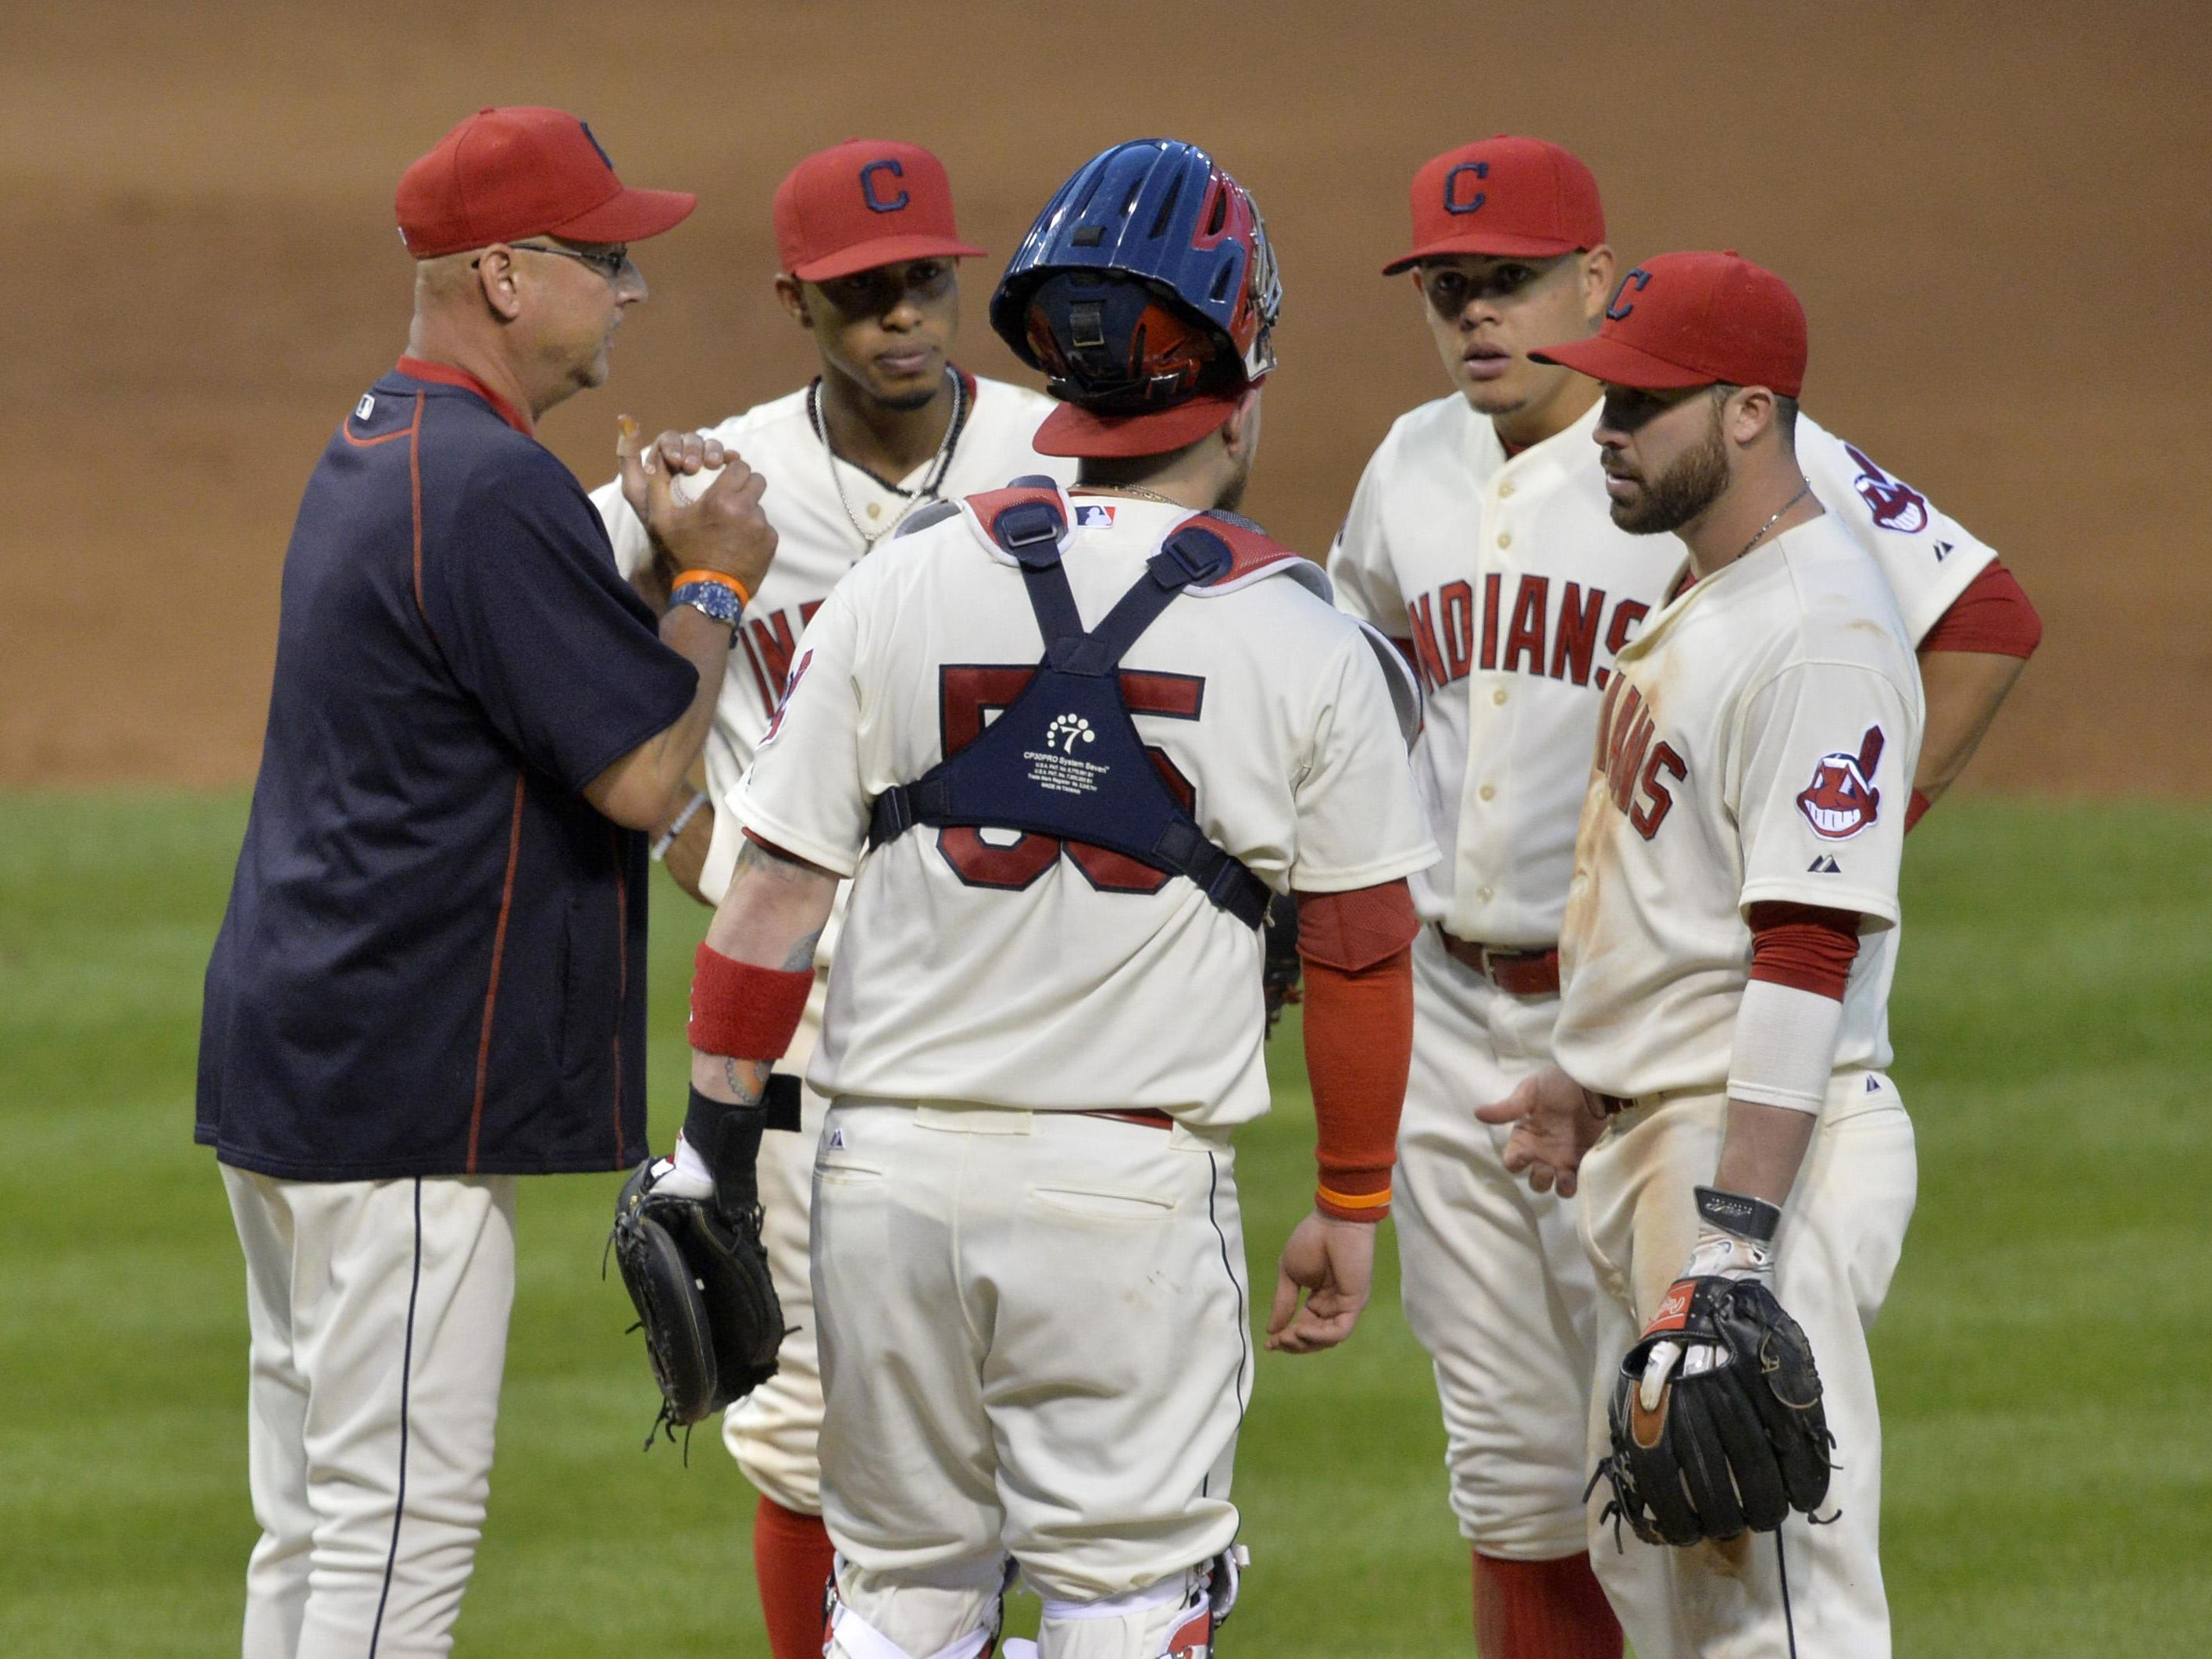 Cleveland Indians manager Terry Francona (left) stands on the mound during a pitching change in the eighth inning against the Oakland Athletics at Progressive Field.